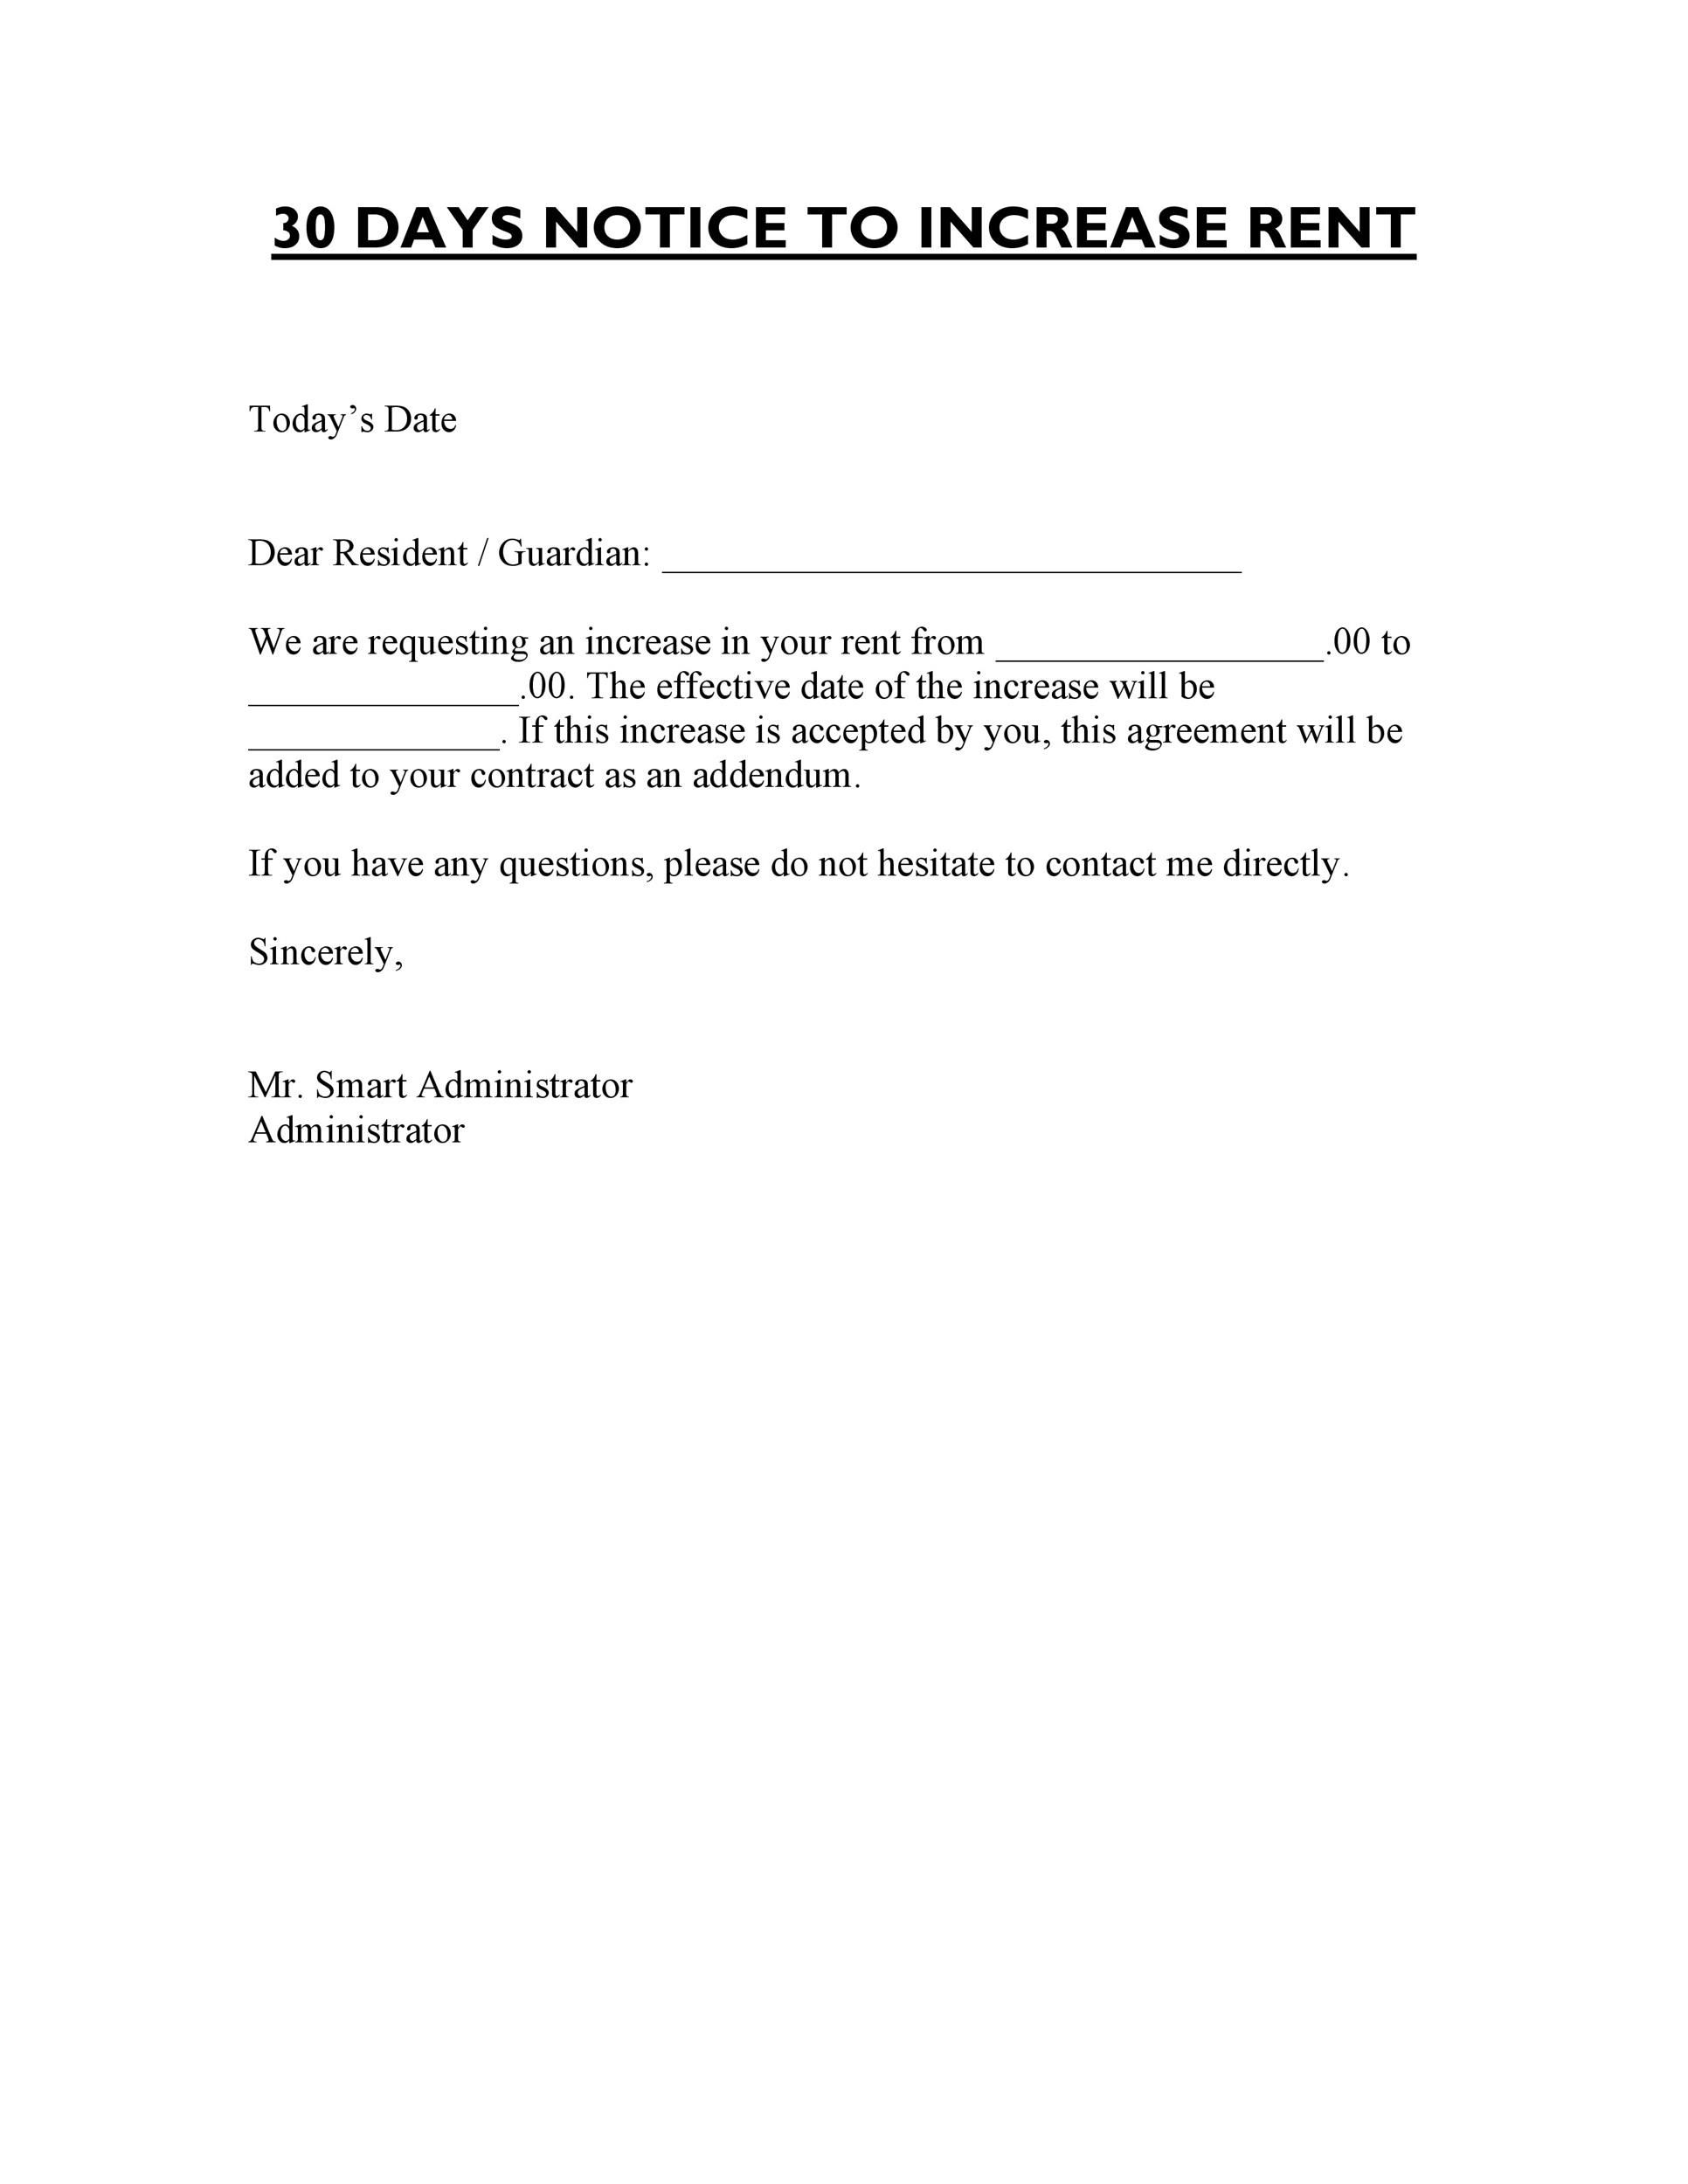 005 Awesome Rent Increase Letter Template Sample  Rental South Africa Nz ScotlandFull